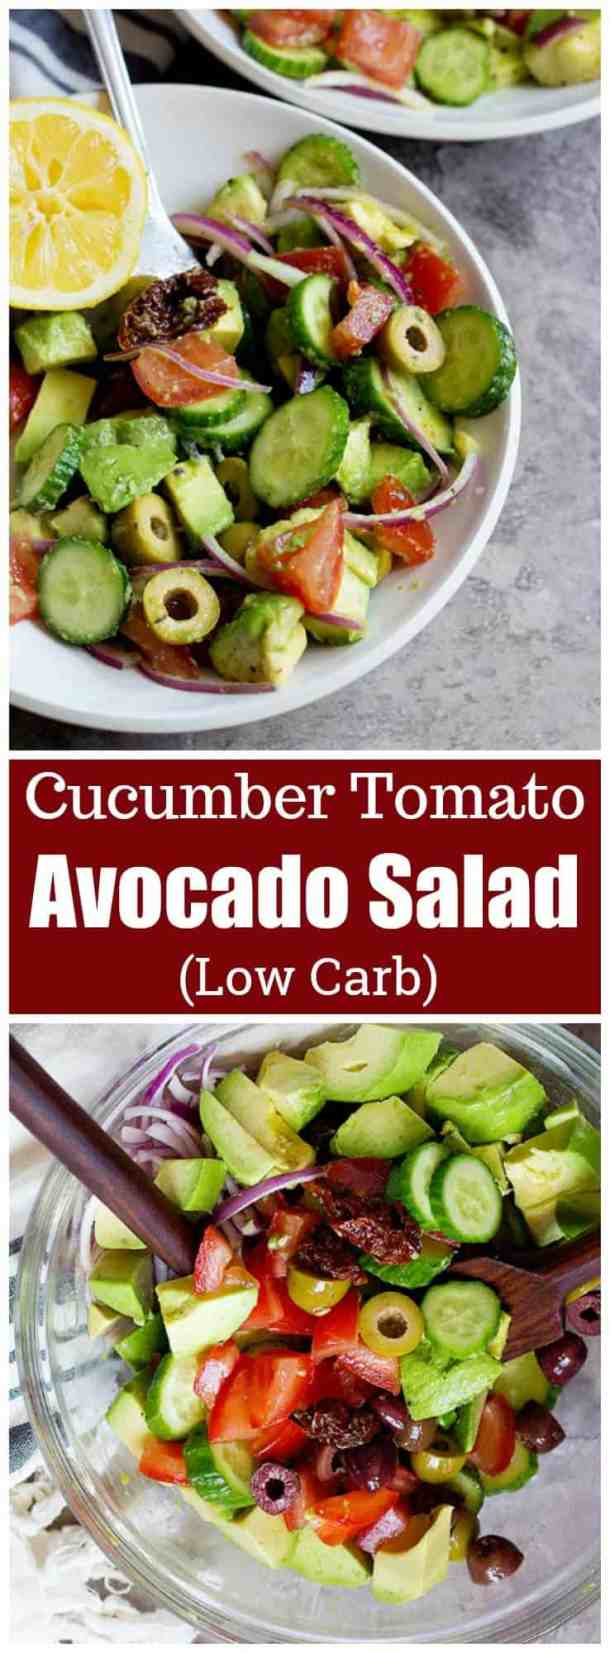 This cucumber tomato avocado salad is perfect for any day of the week. This easy and tasty salad comes together in no time and is full of flavor thanks to sun dried tomatoes and olives. #lowcarb #lowcarbdiet #lowcarbrecipes #avocadosalad #avocadotomato #saladrcipes #healthysaladrecipes #summersaladrecipes